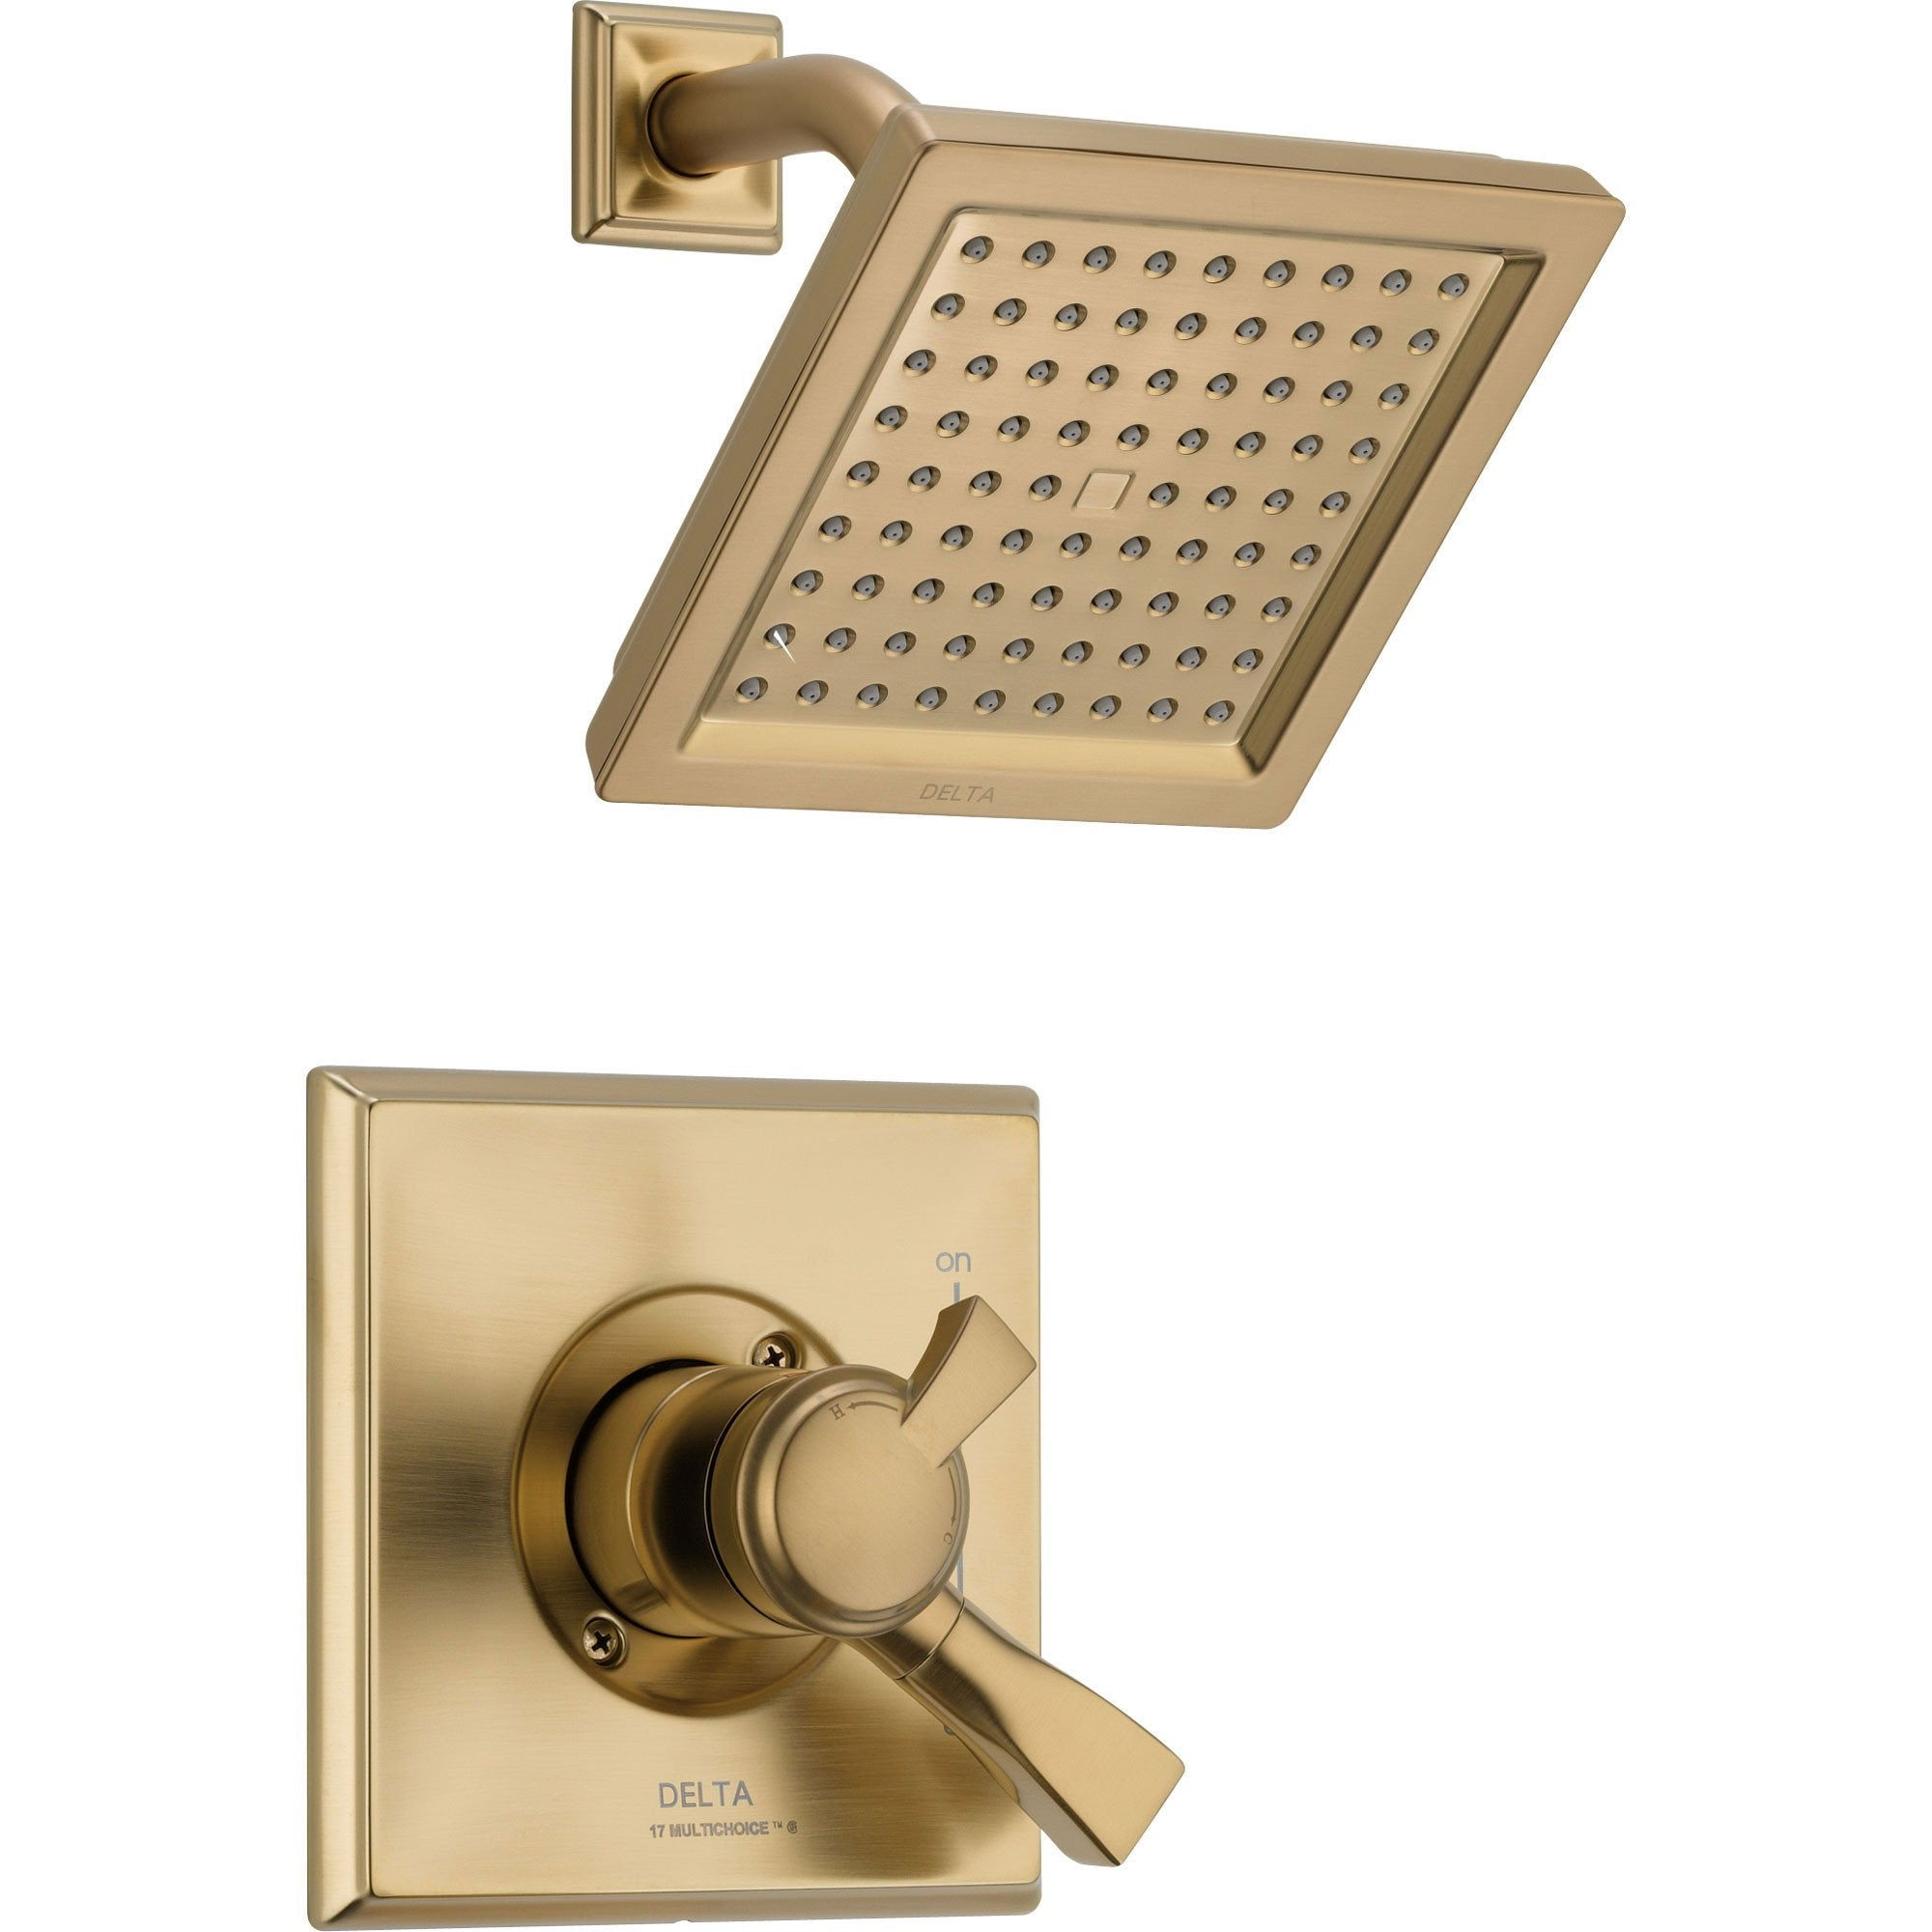 Delta Dryden Champagne Bronze Temp/Volume Control Shower Faucet with Valve D679V